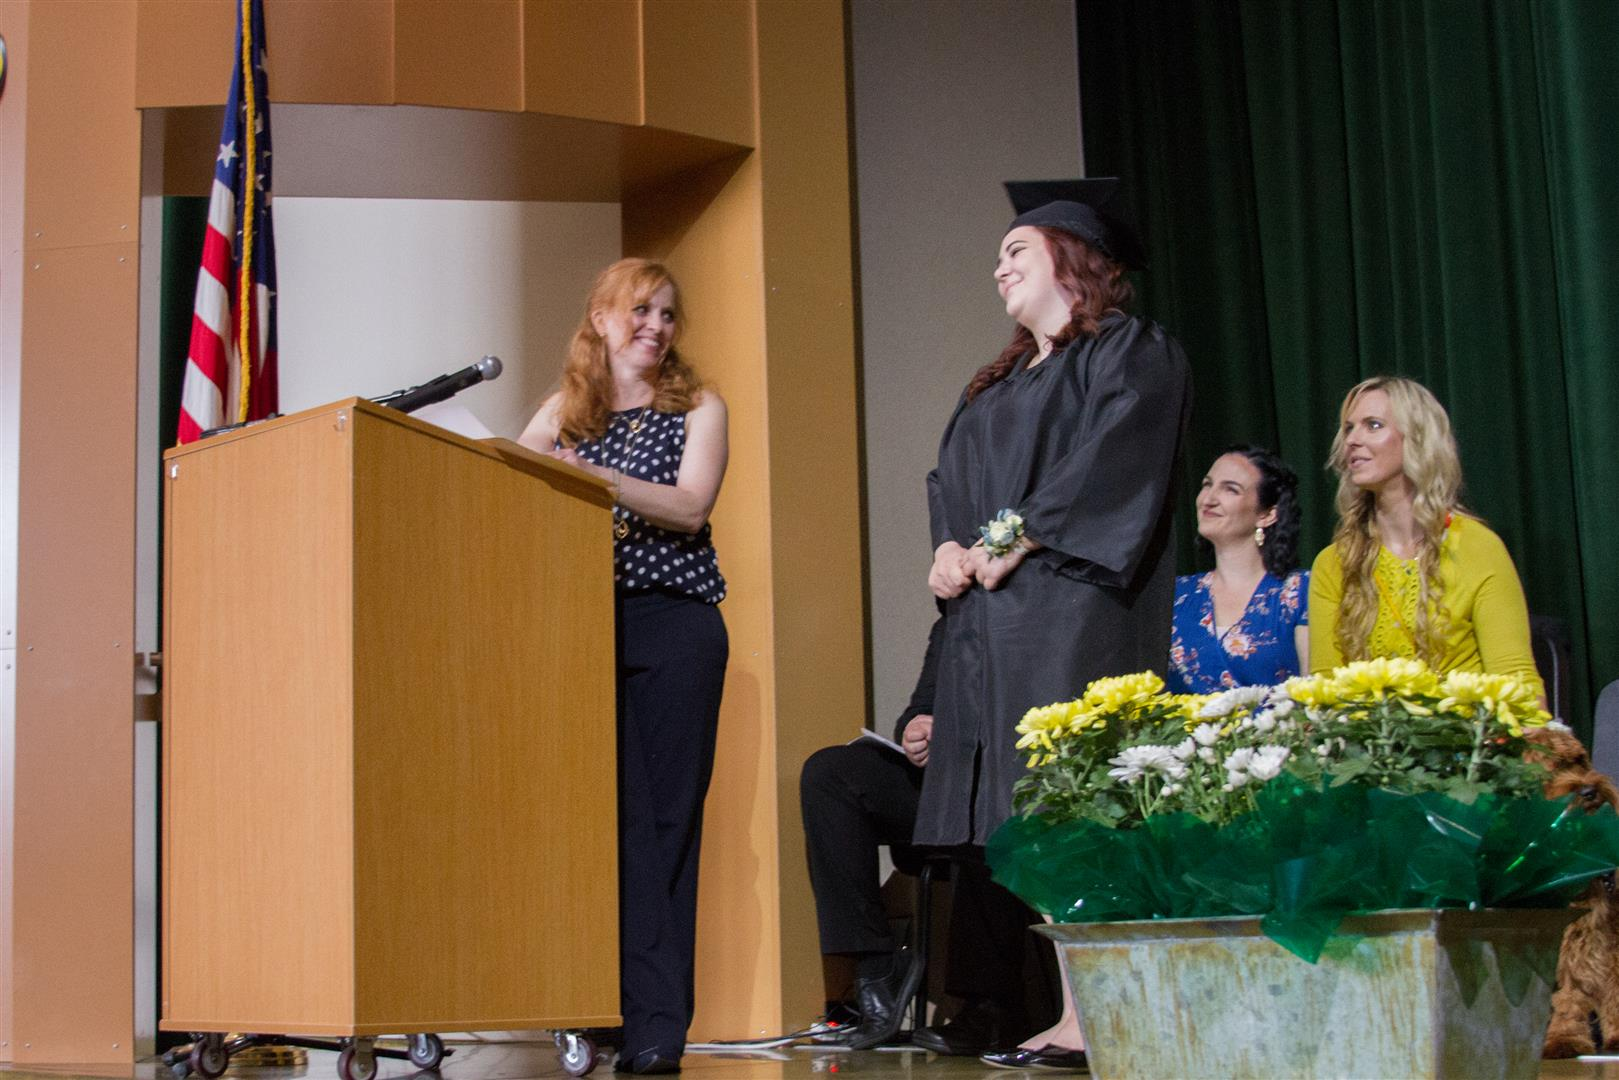 1560449993-team-high-class-of-2019-commencement-15__large_